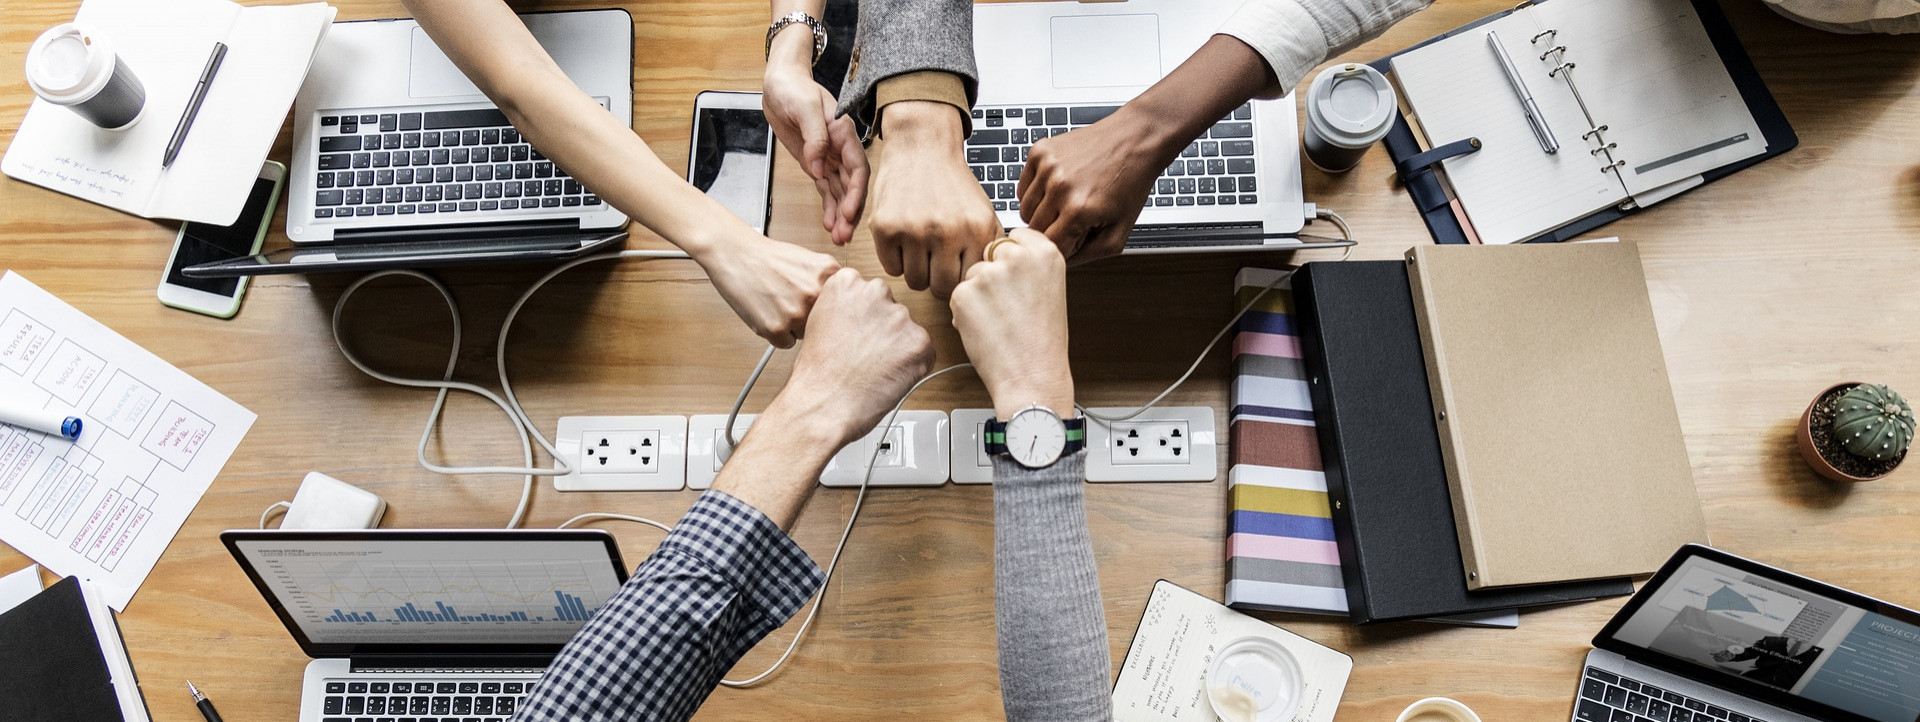 Finding allies in the newsroom that can support your ideas can give you the support you need to speak up. [Photo: Pixabay]